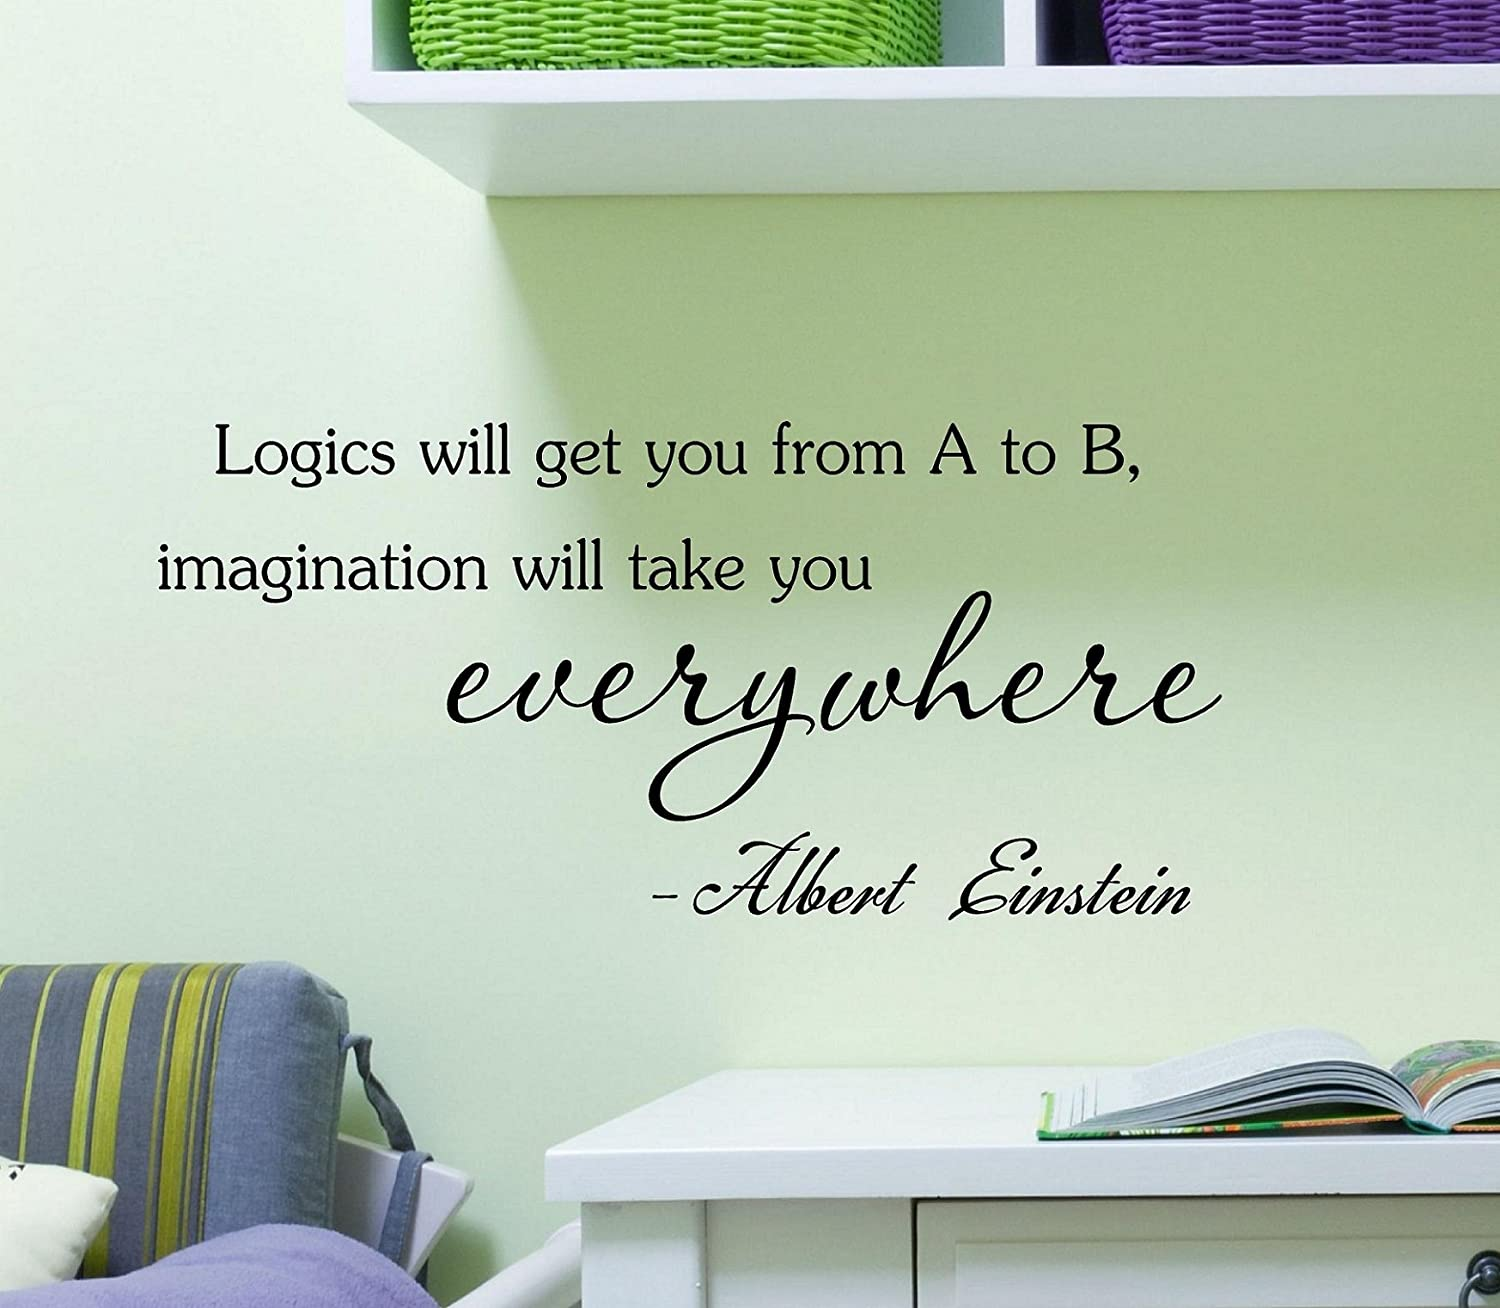 Logics will get you from A to B imagination will take you everywhere - Albert Einstein Vinyl Decal Matte Black Decor Decal Skin Sticker Laptop